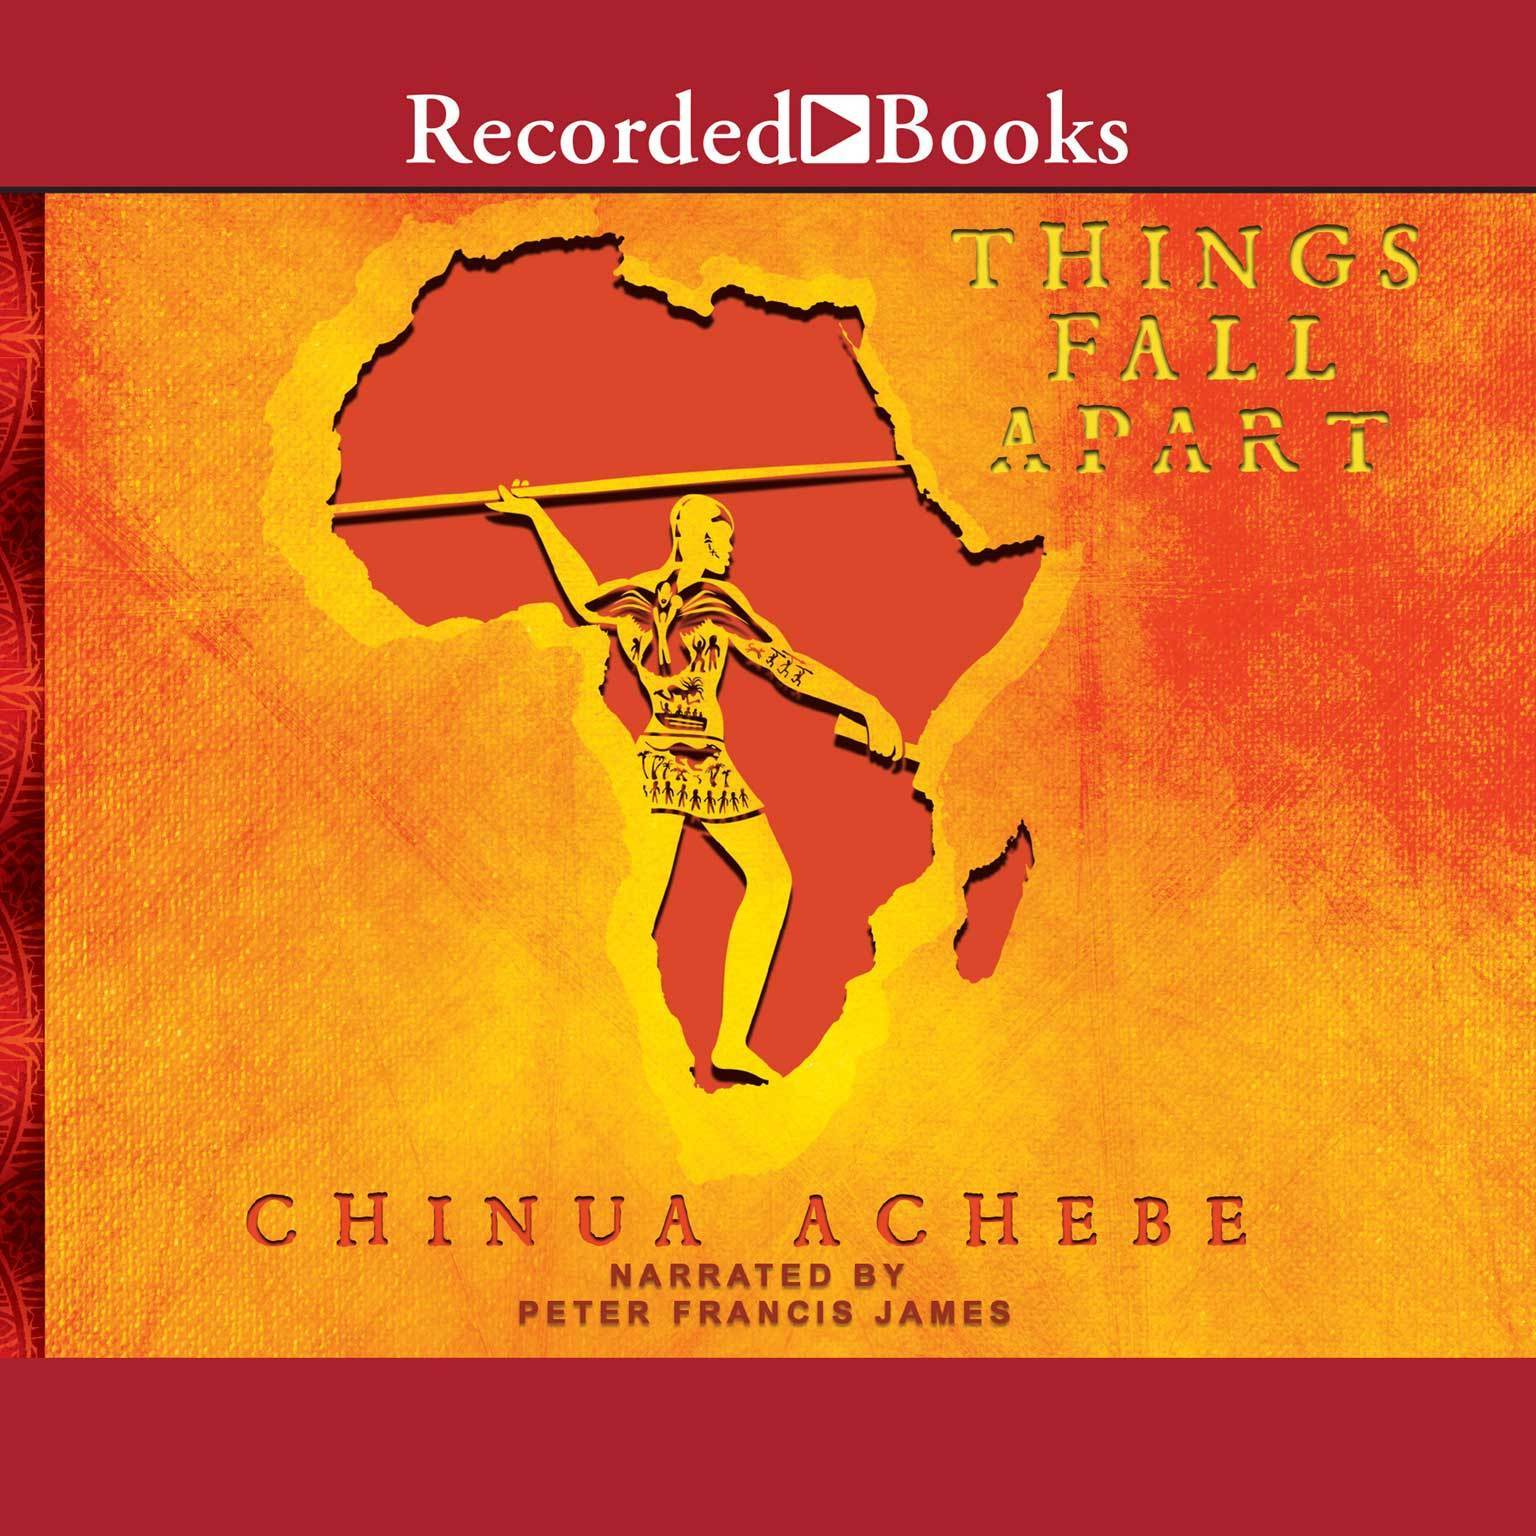 essay on things fall apart by chinua achebe best ideas about  hear things fall apart audiobook by chinua achebe by peter extended audio sample things fall apart